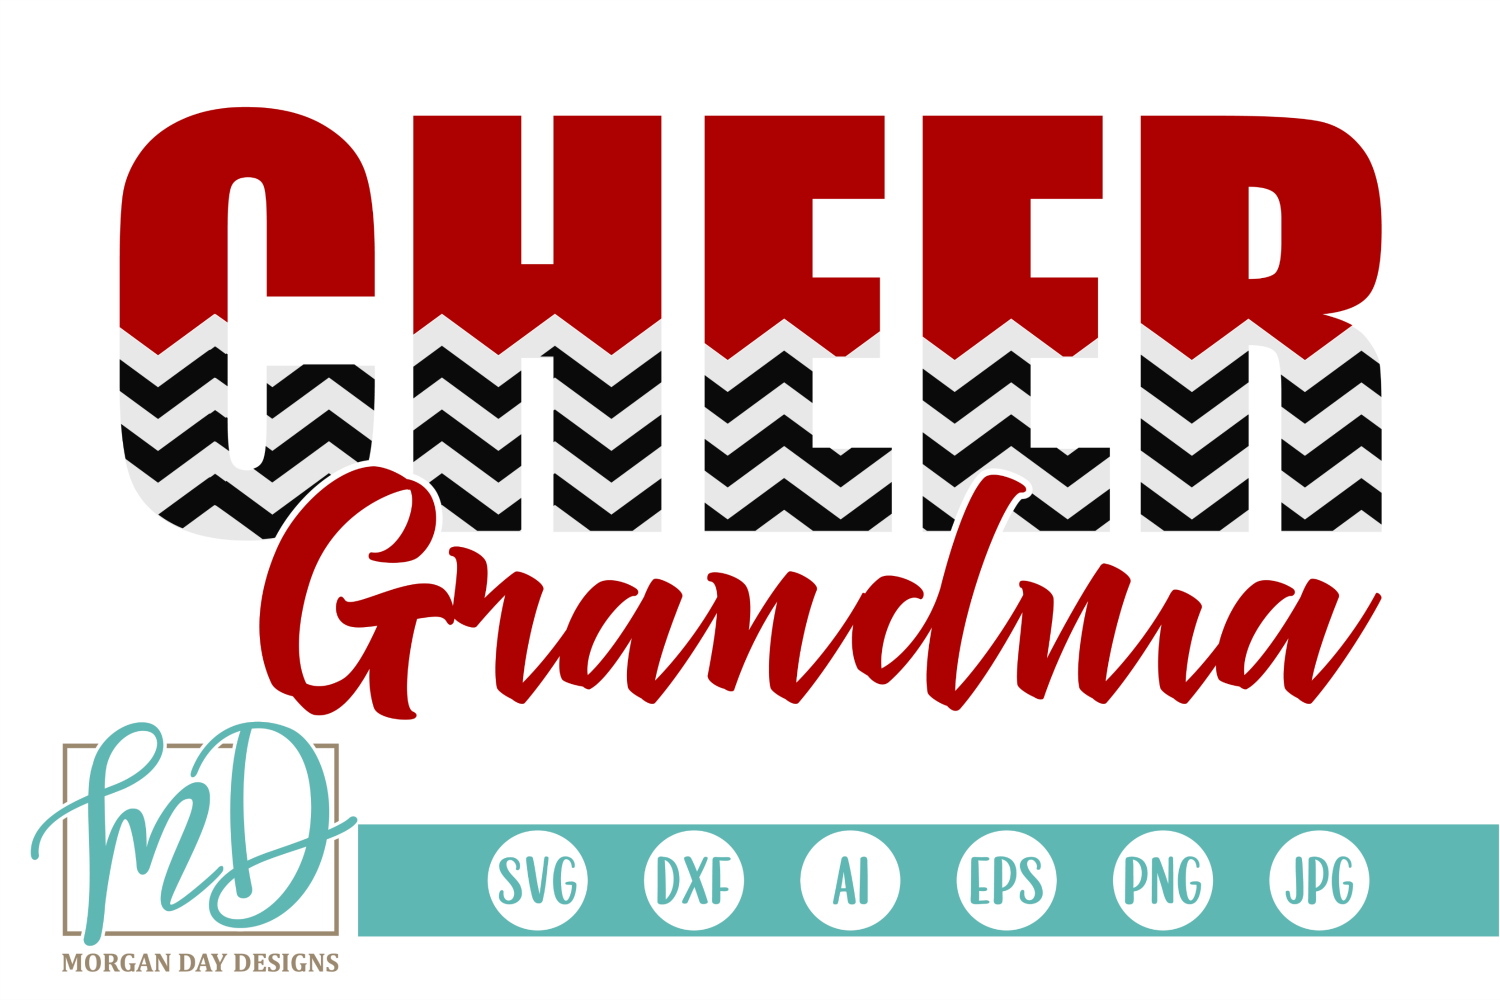 Download Free Cheer Grandma Graphic By Morgan Day Designs Creative Fabrica for Cricut Explore, Silhouette and other cutting machines.